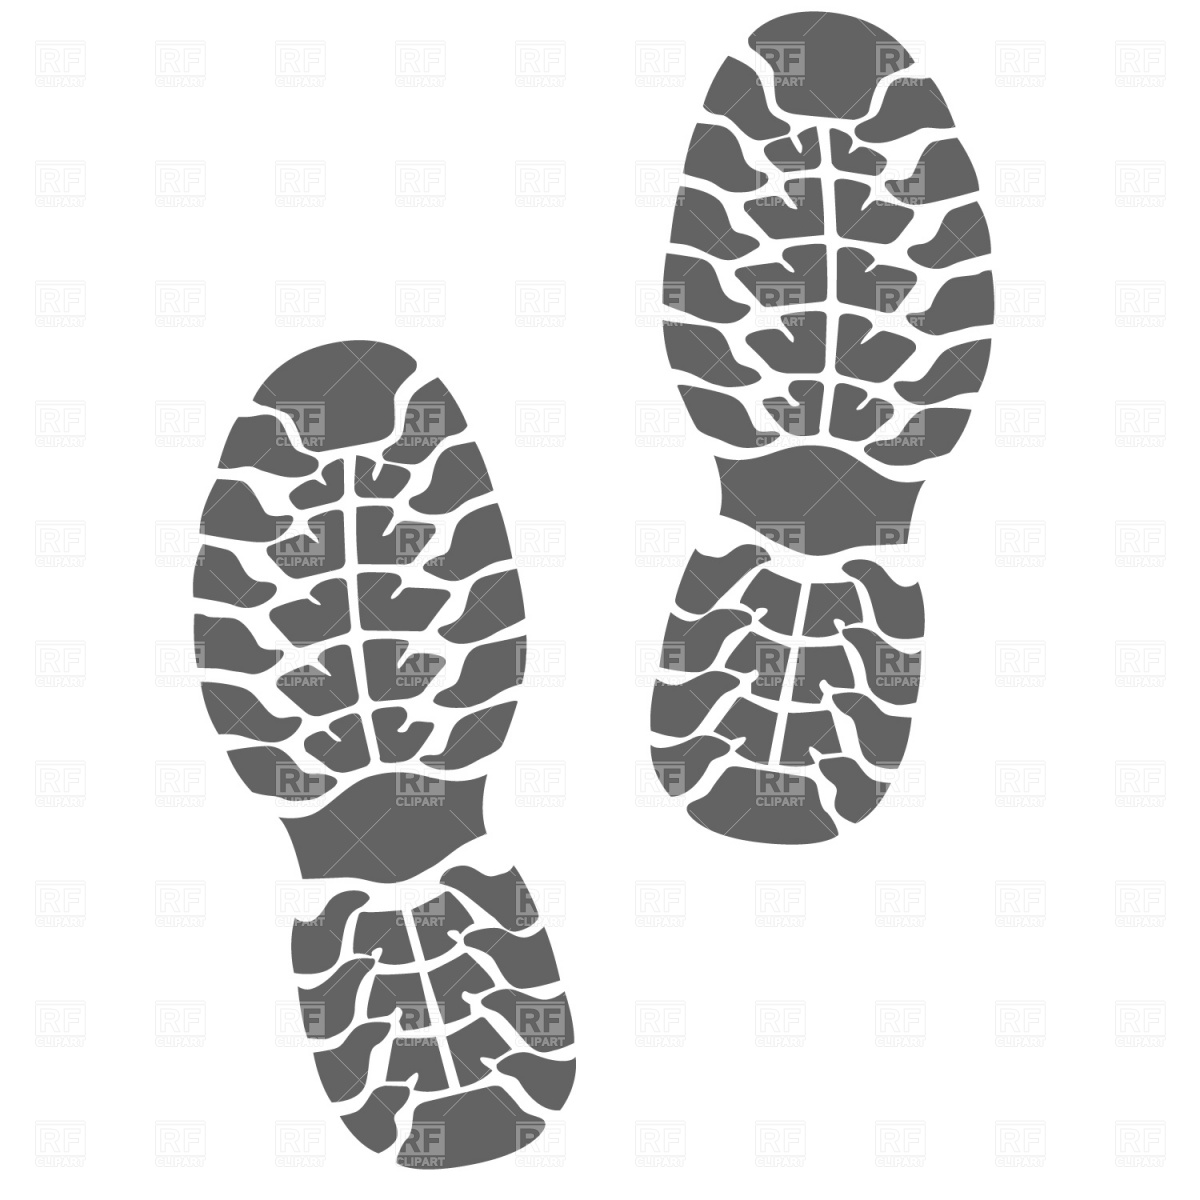 13 Shoe Print Vector Art Images.